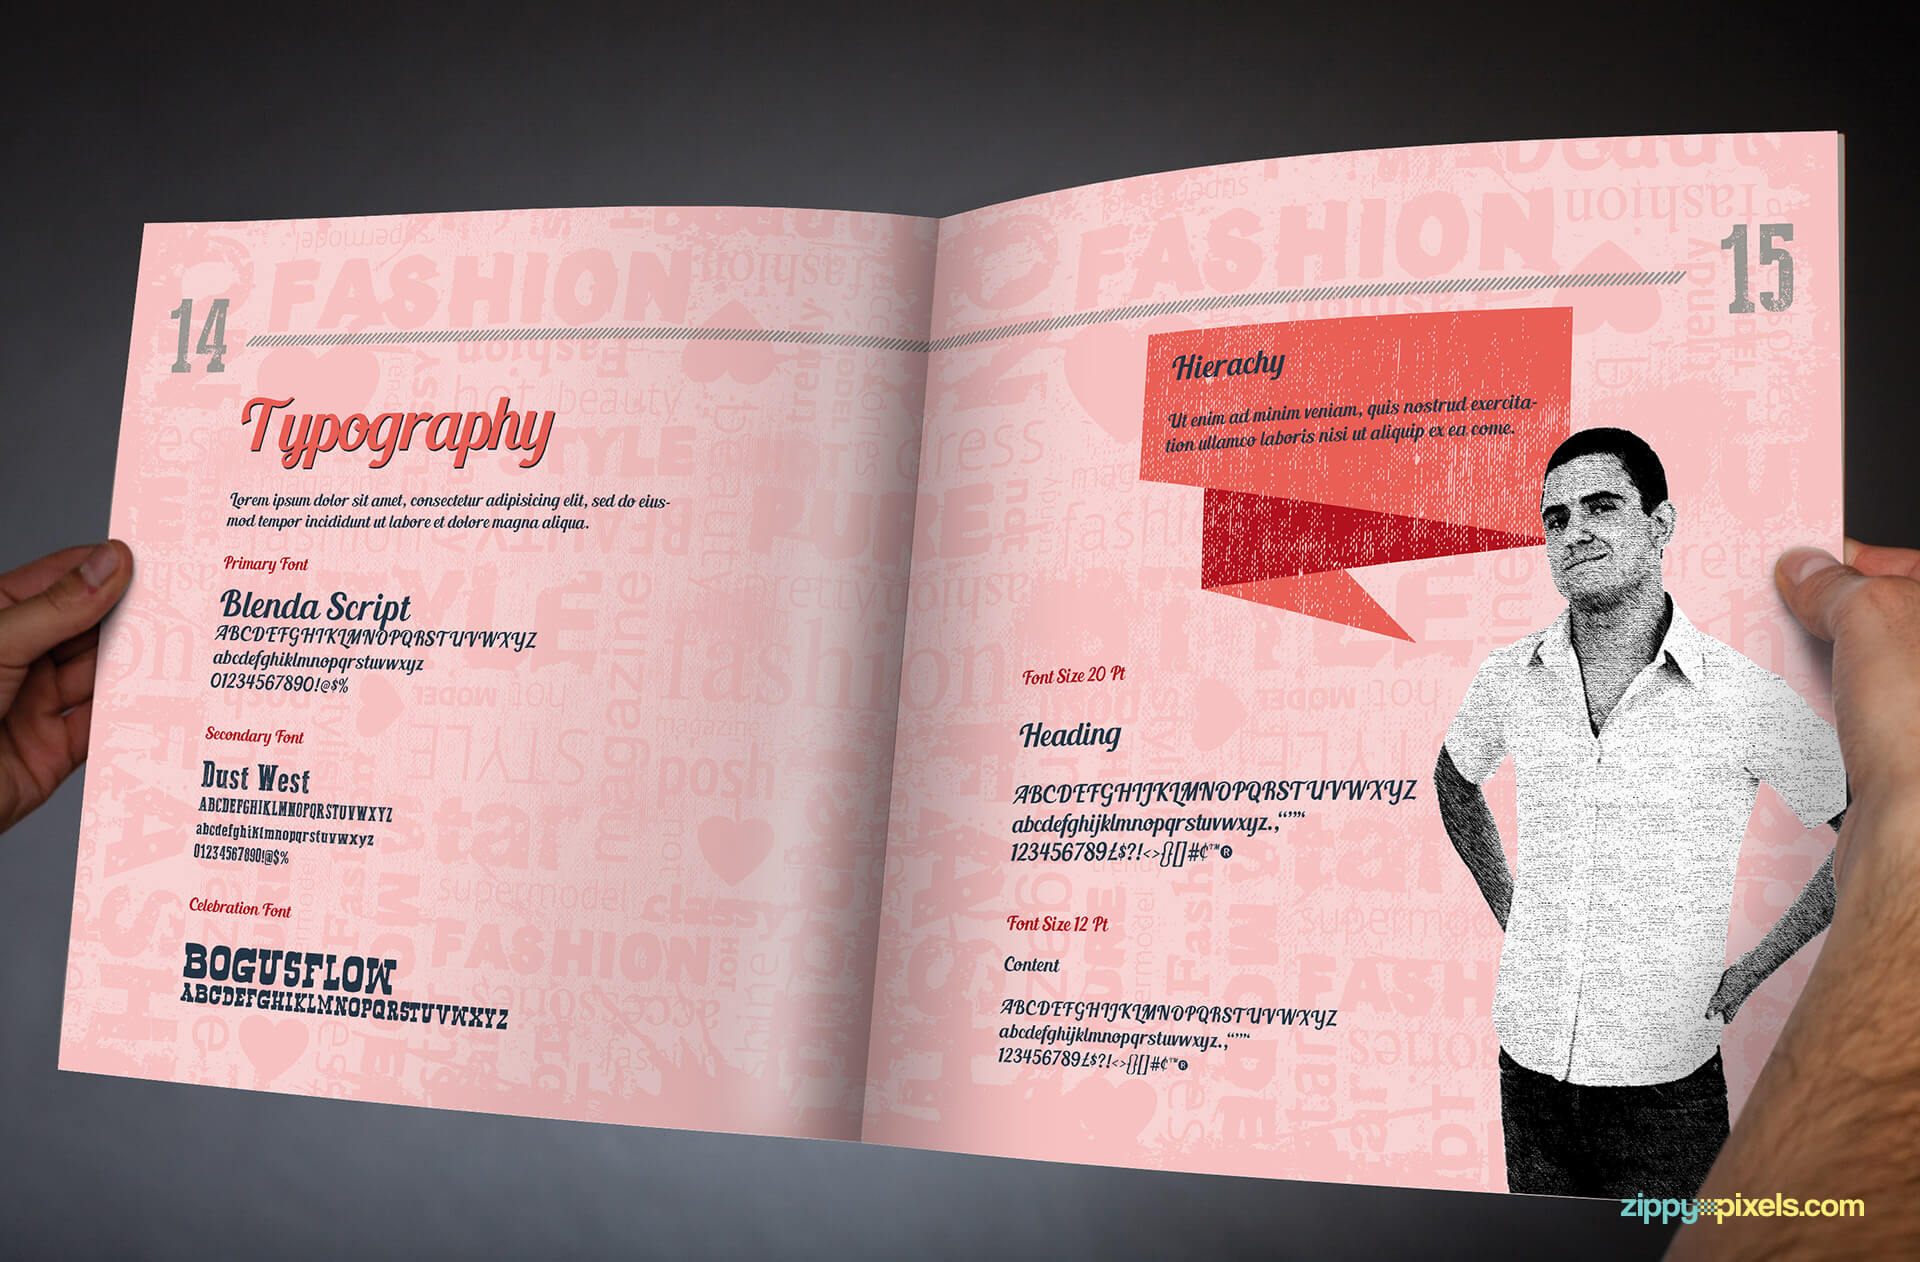 10-brand-book-13-typography-hierachy